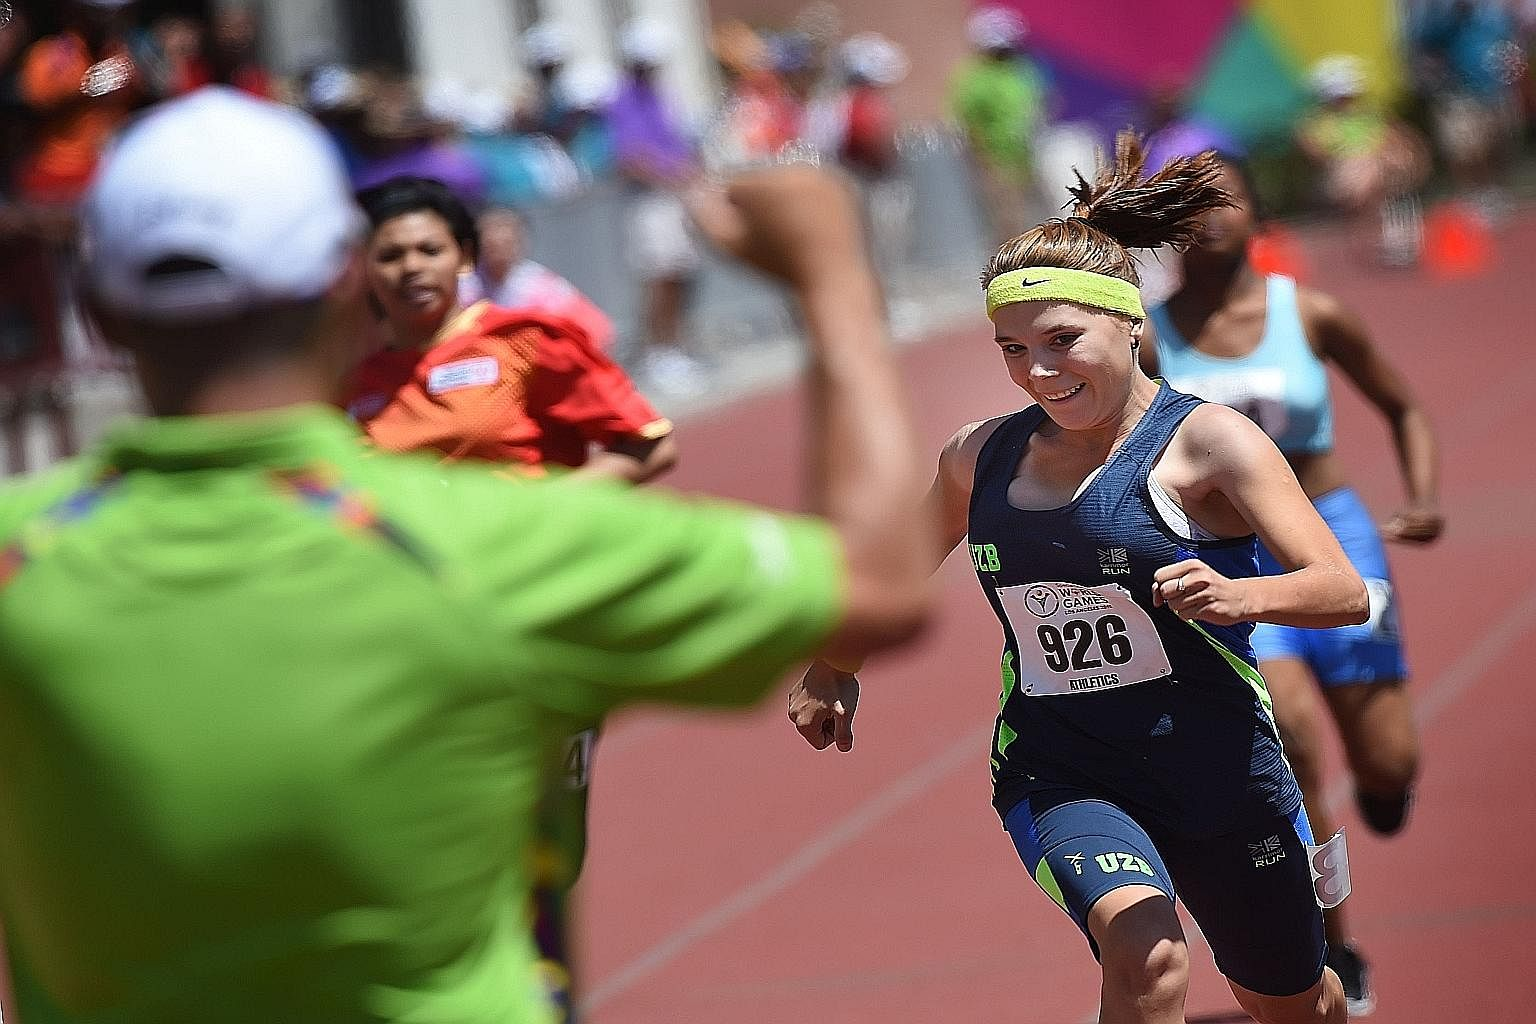 Rufina Shagardanova of Uzbekistan winning her track heat at the 2015 Special Olympics World Games in Los Angeles on Sunday. About 6,500 amateur athletes from 165 countries are taking part in this year's Games. The competition, started in 1968, has gr